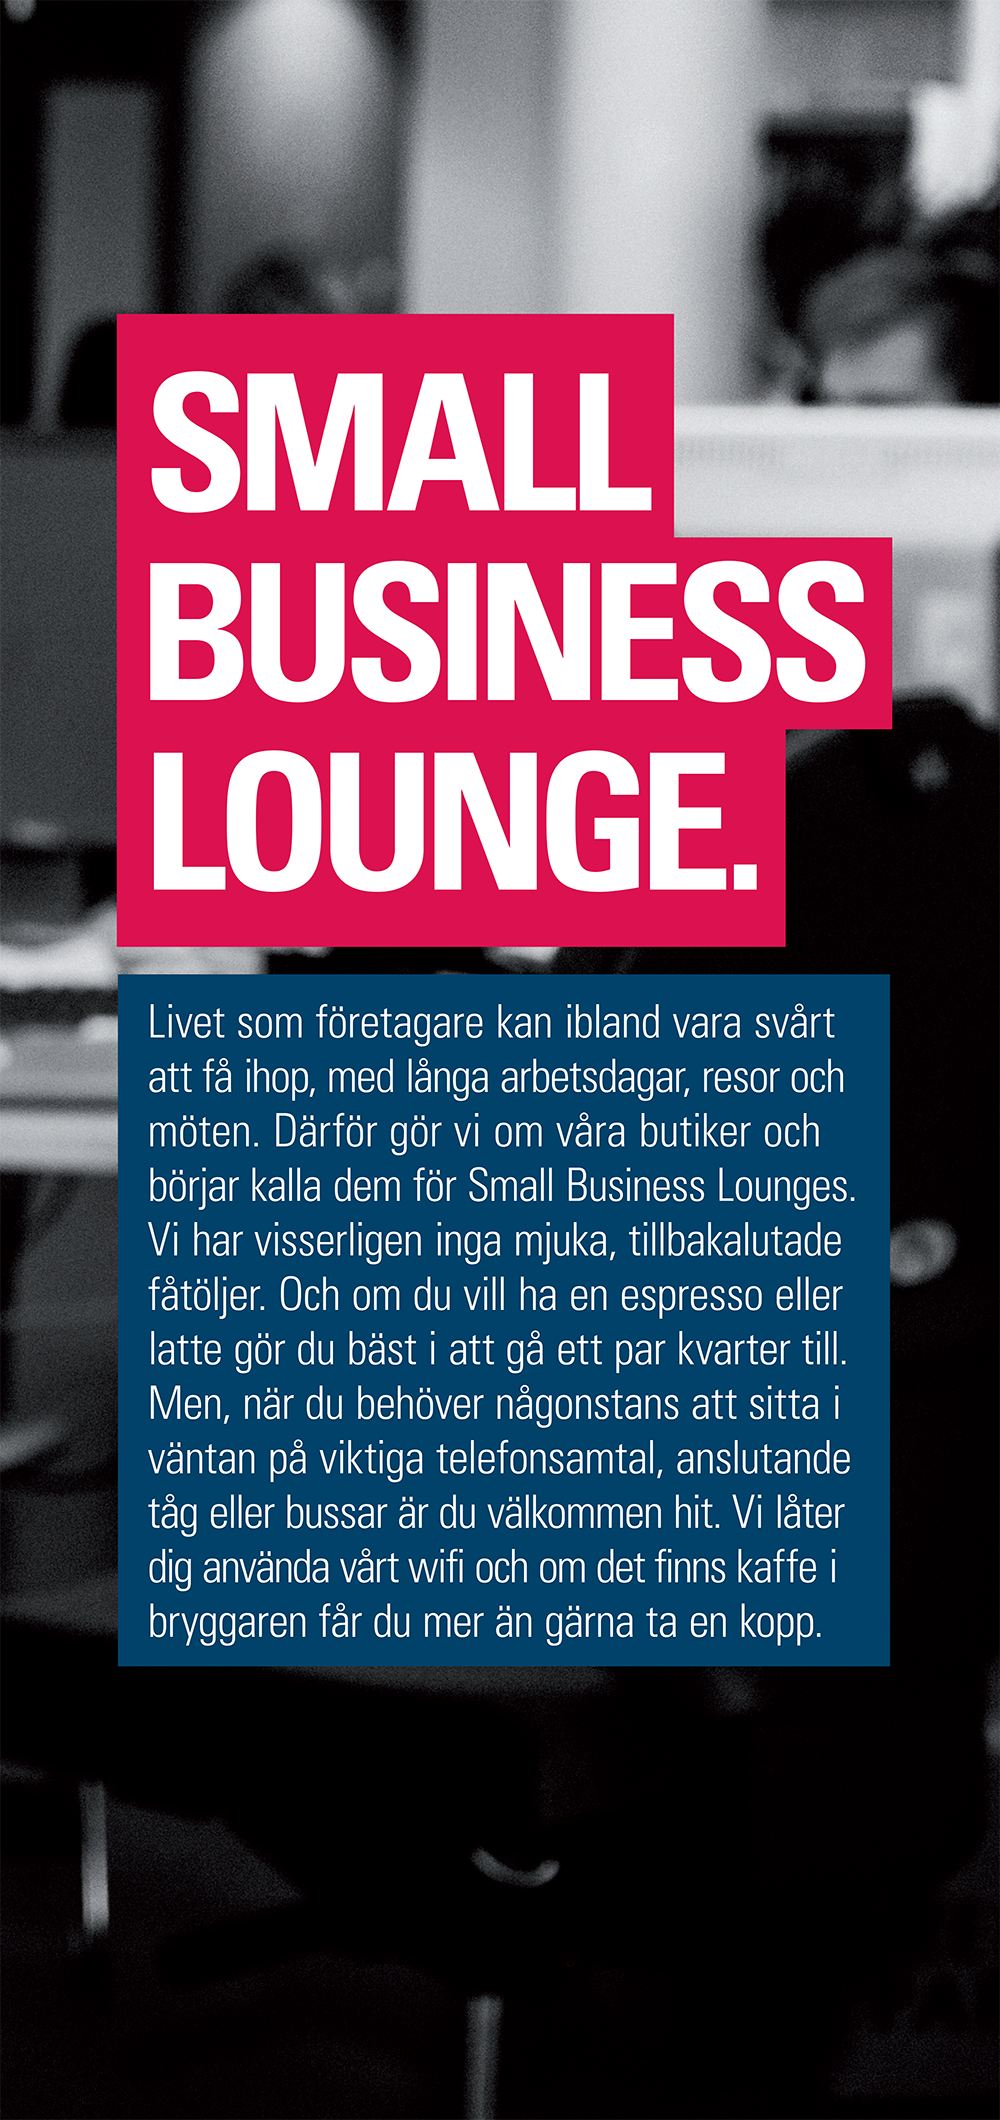 SmallBusinessLounge.png